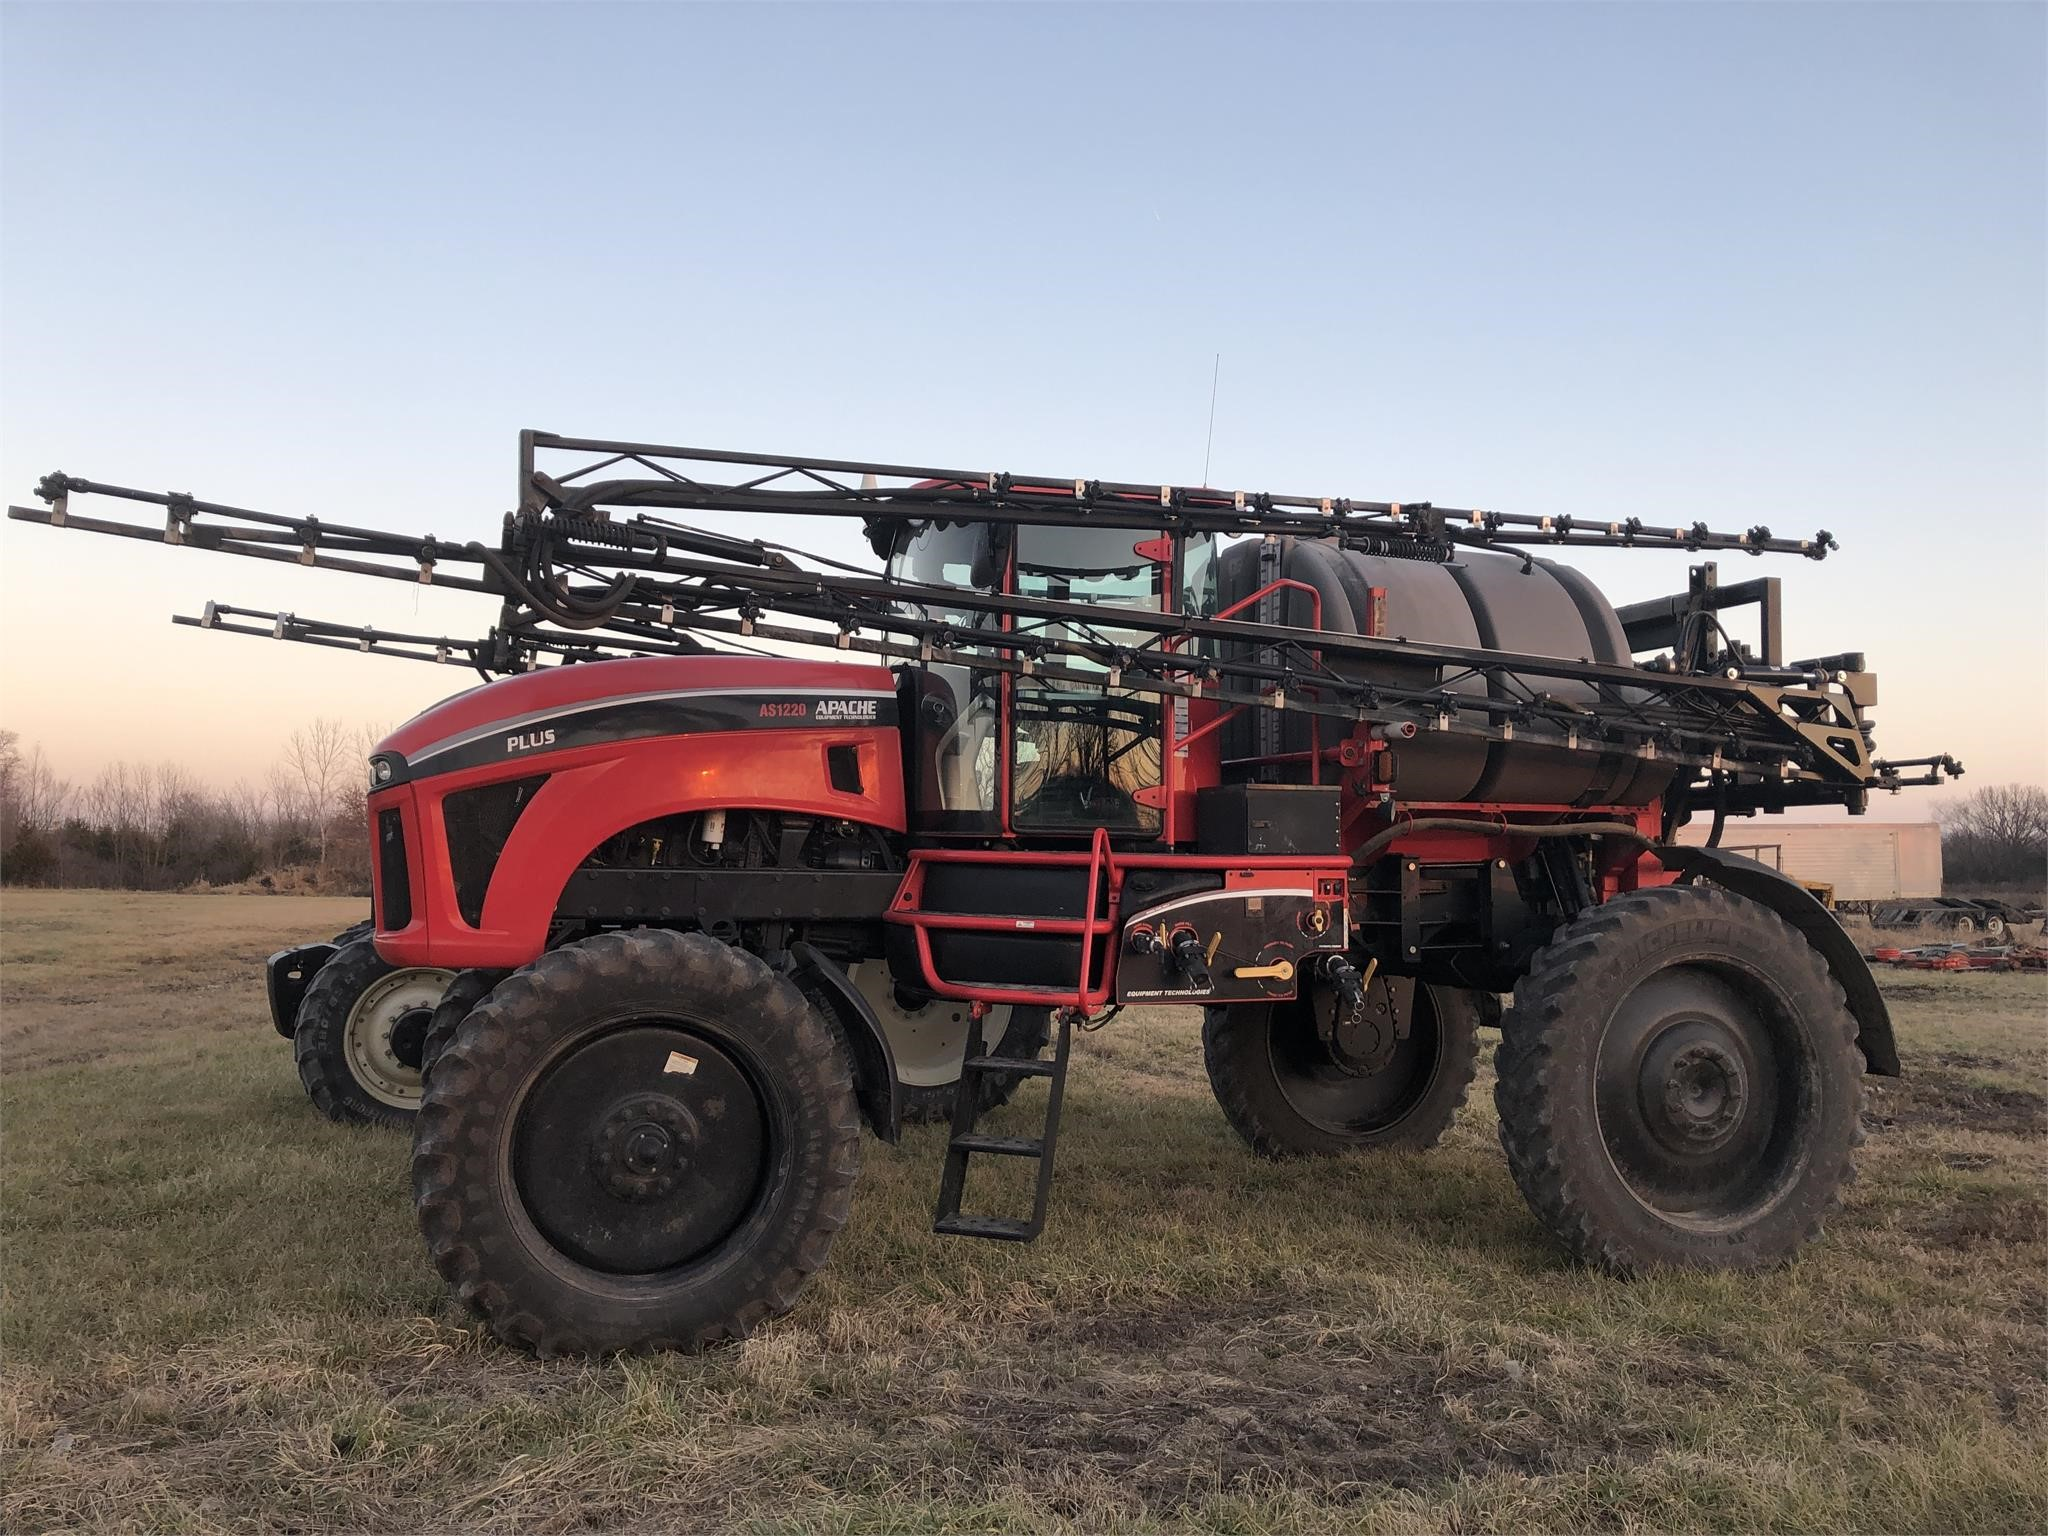 2014 Apache AS1220 Plus II Self-Propelled Sprayer